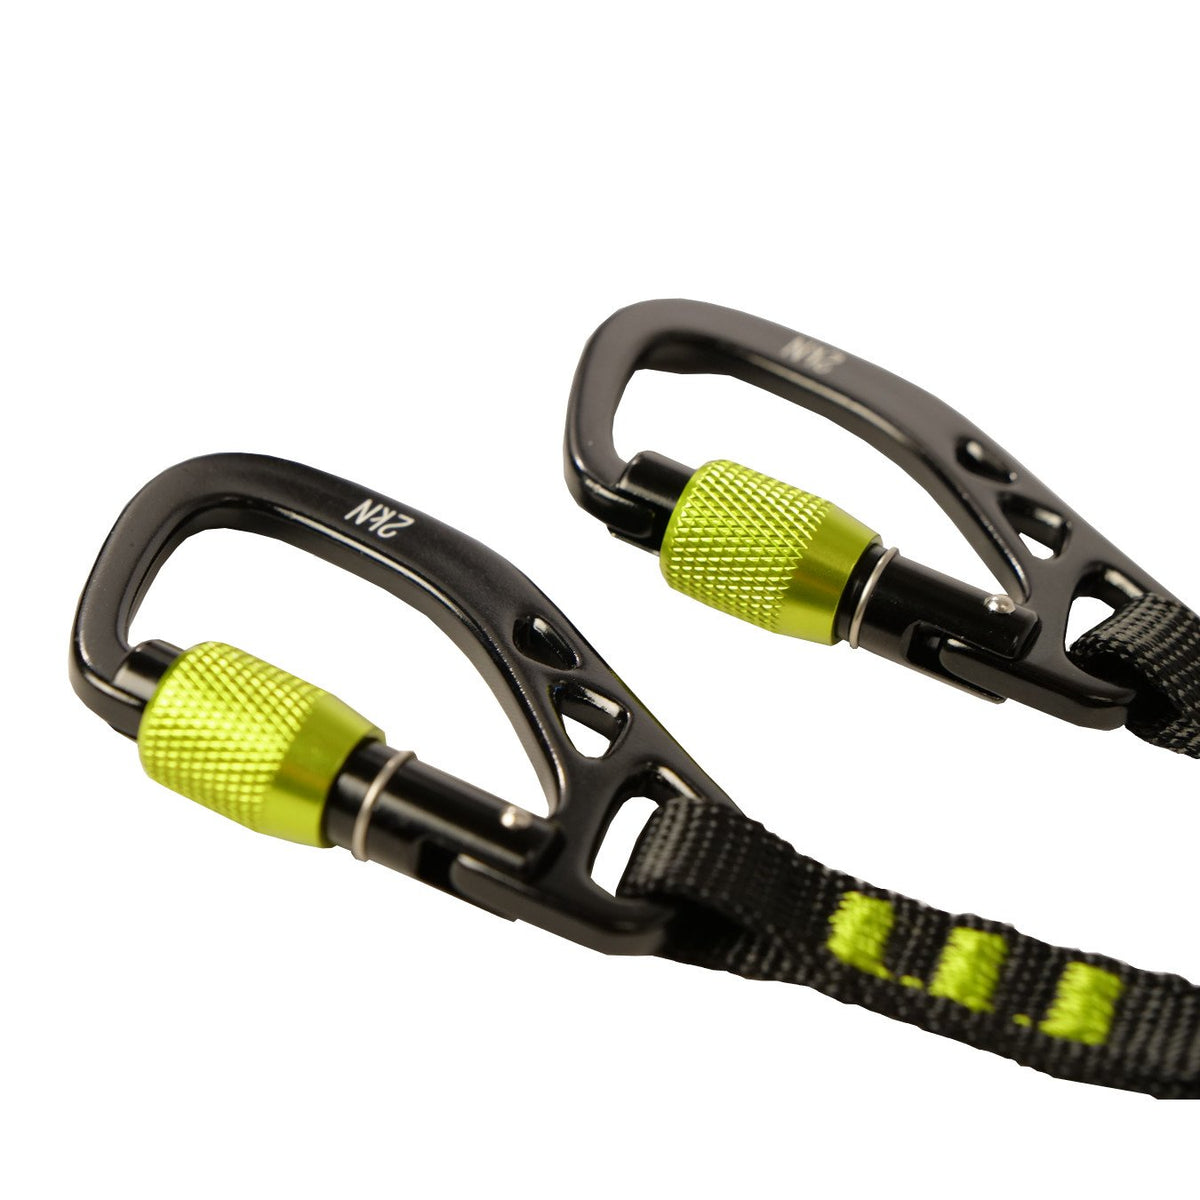 Close Up view of the Black Diamond Spinner Leash locking carabiners in Green and Black